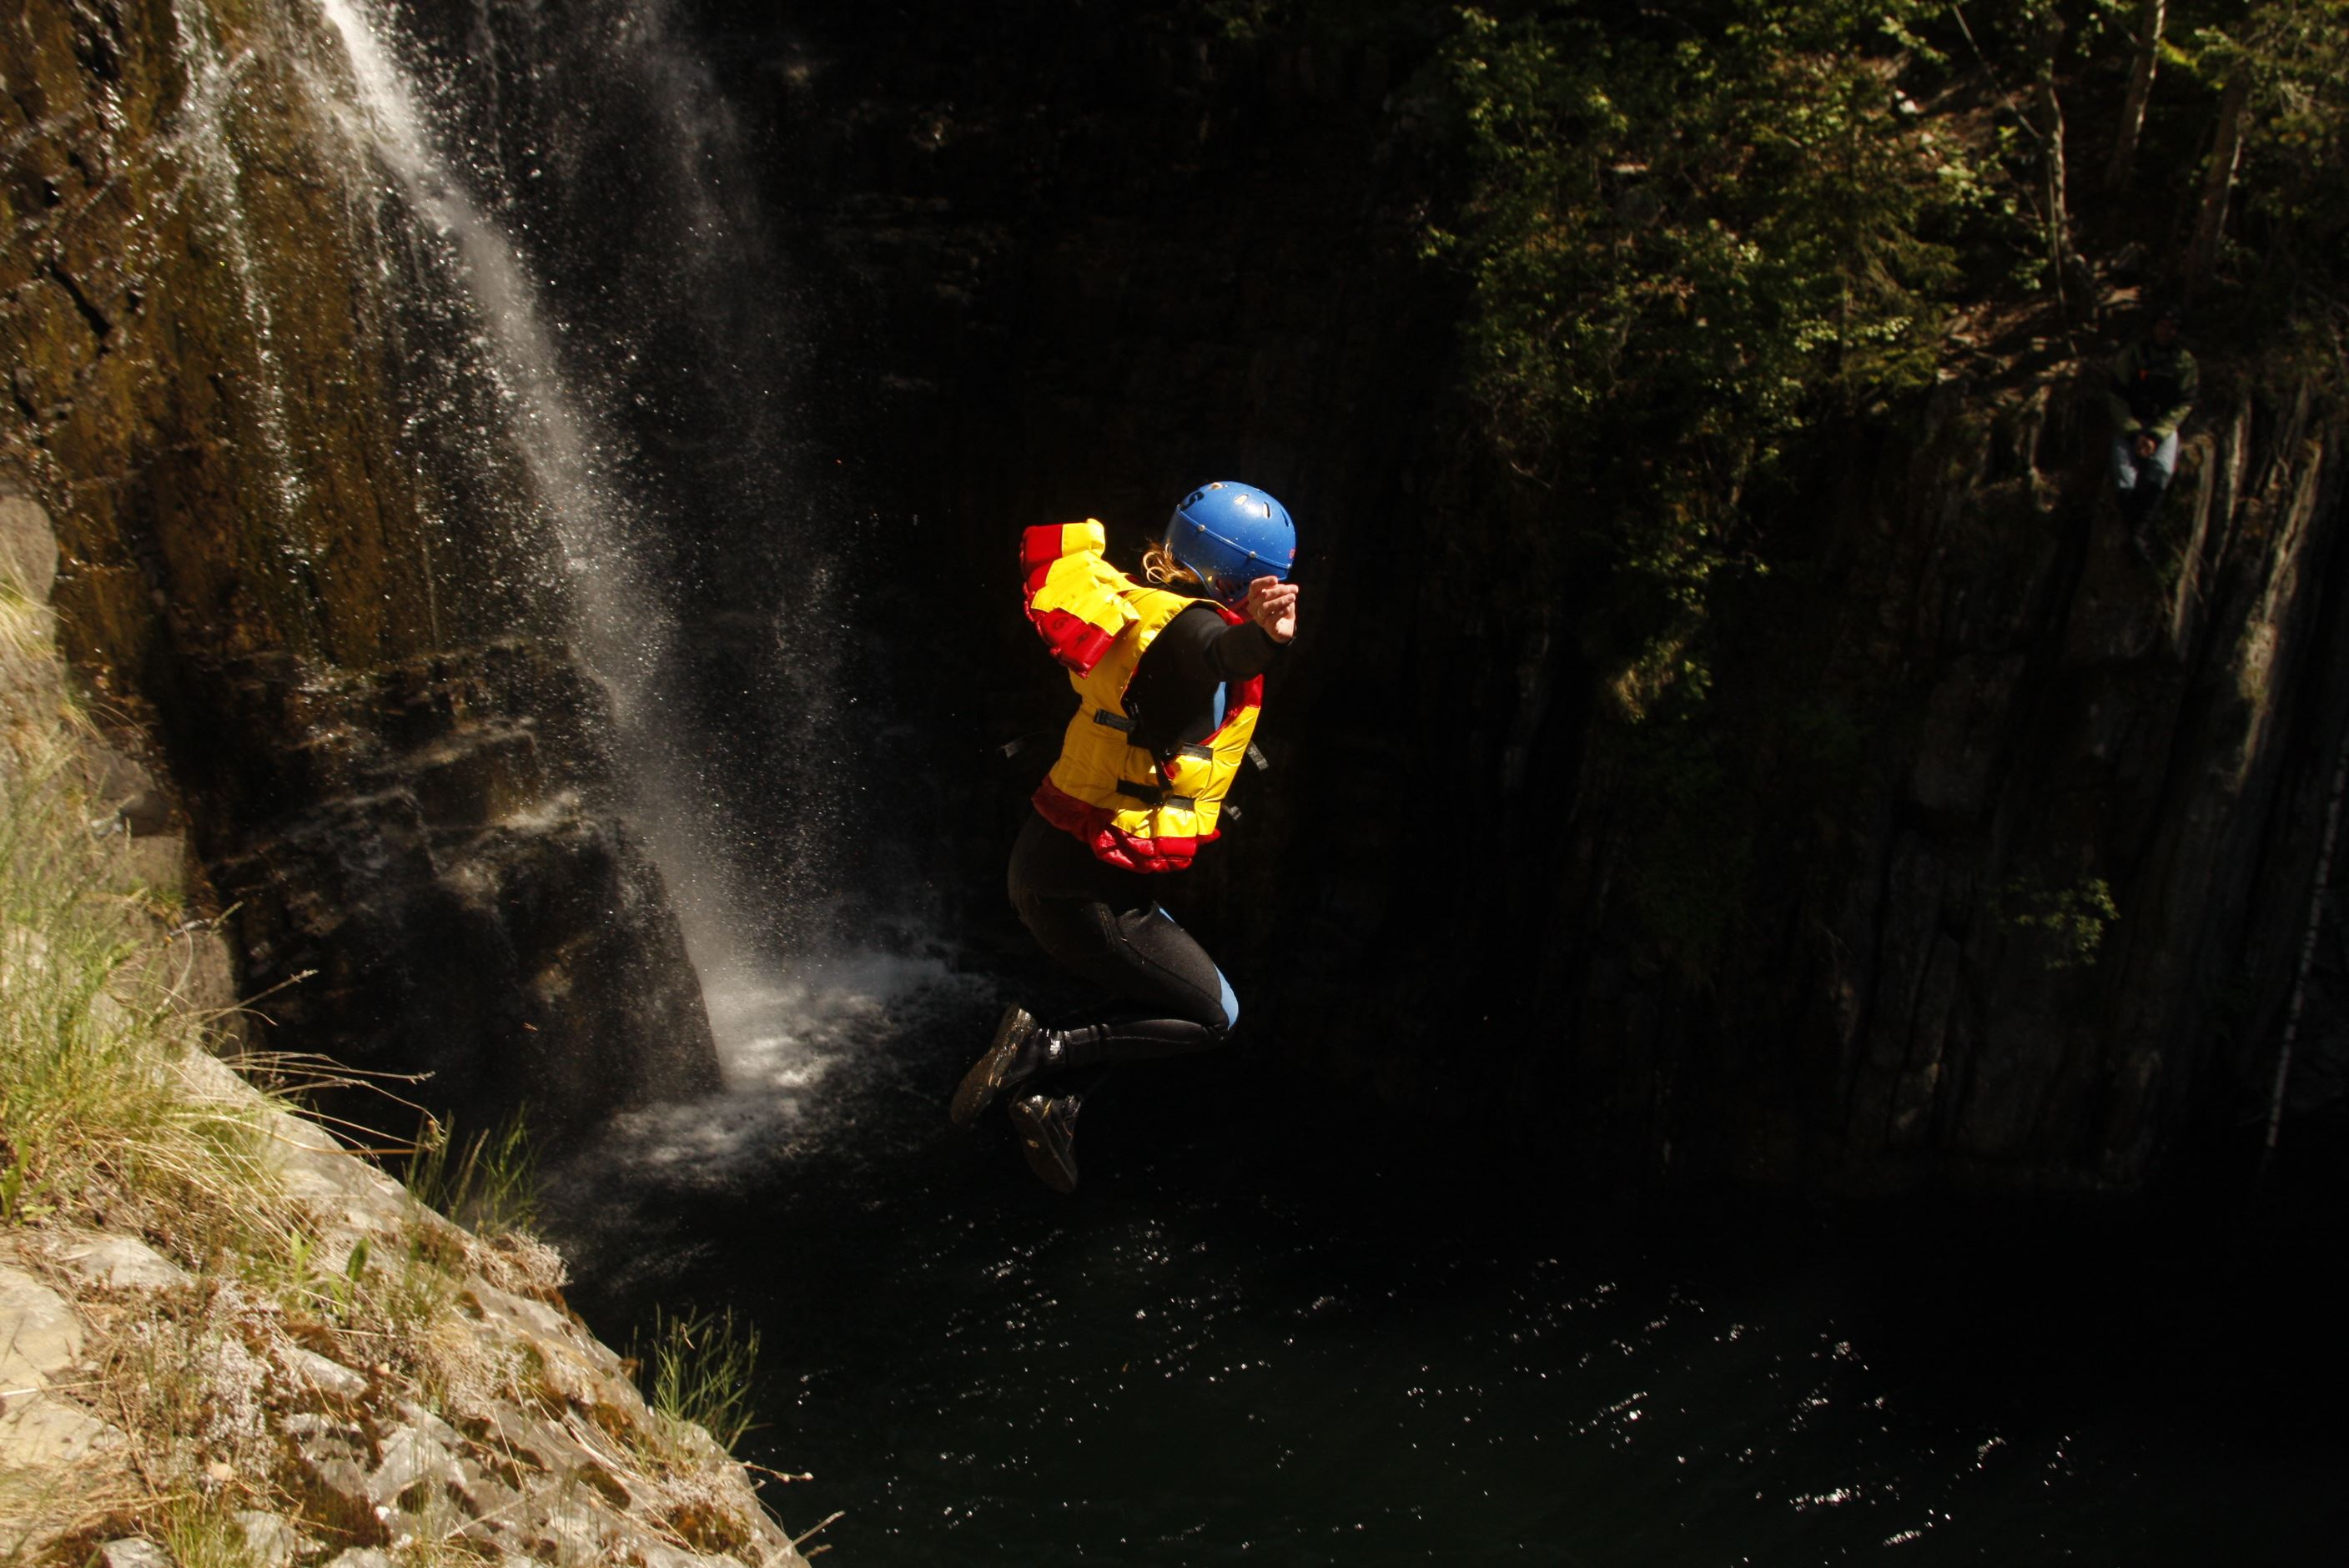 Juving/Canyoning